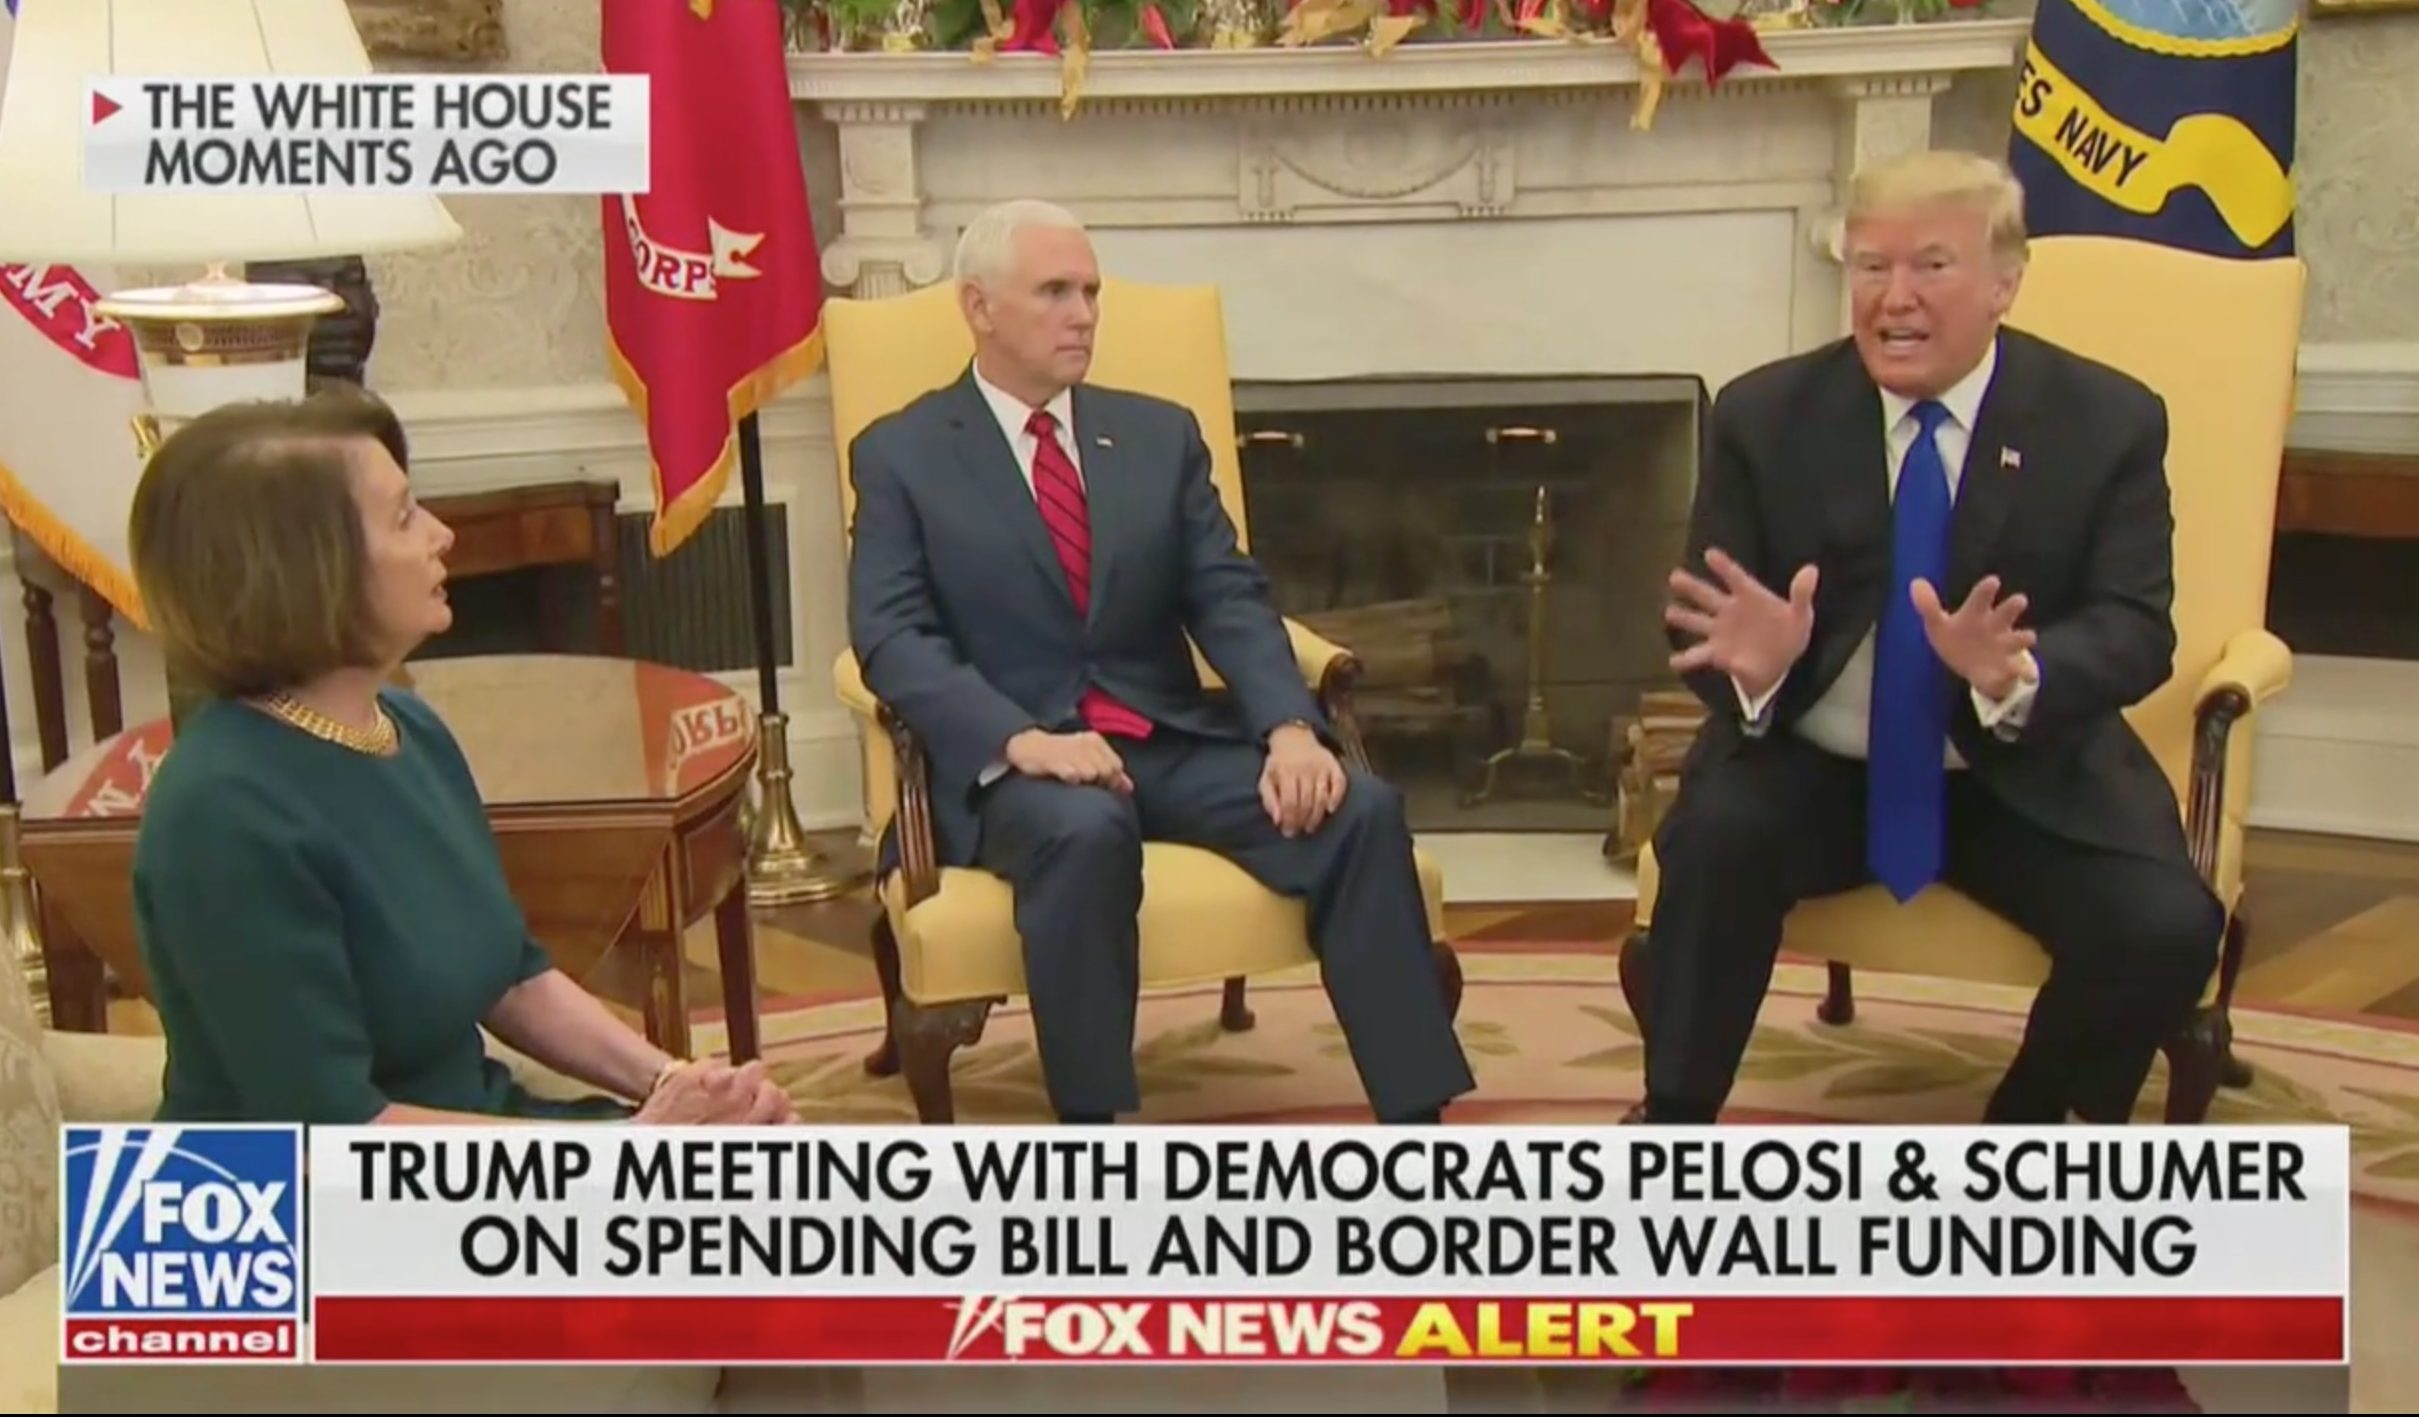 Trump Pelosi And Schumer Have Explosive Televised Shouting